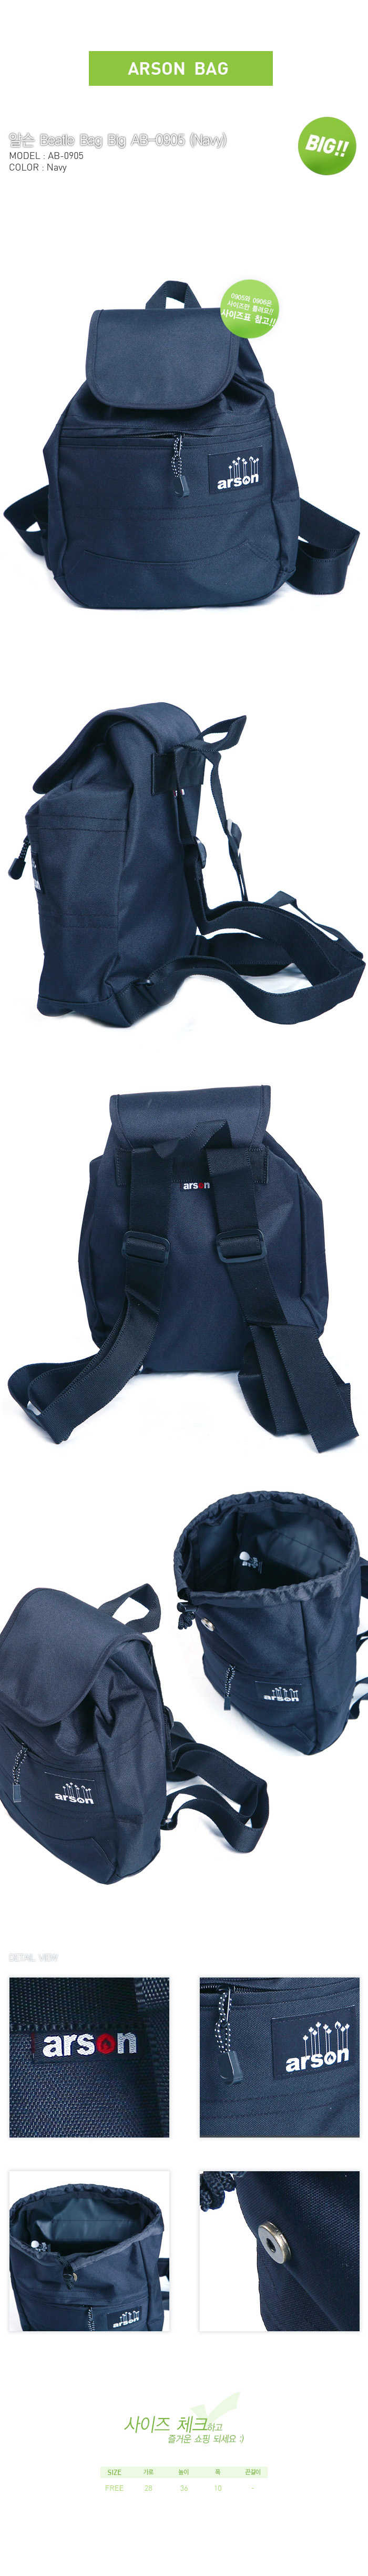 [ ARSON ] AB-0905 (Navy)/Backpack School Bag